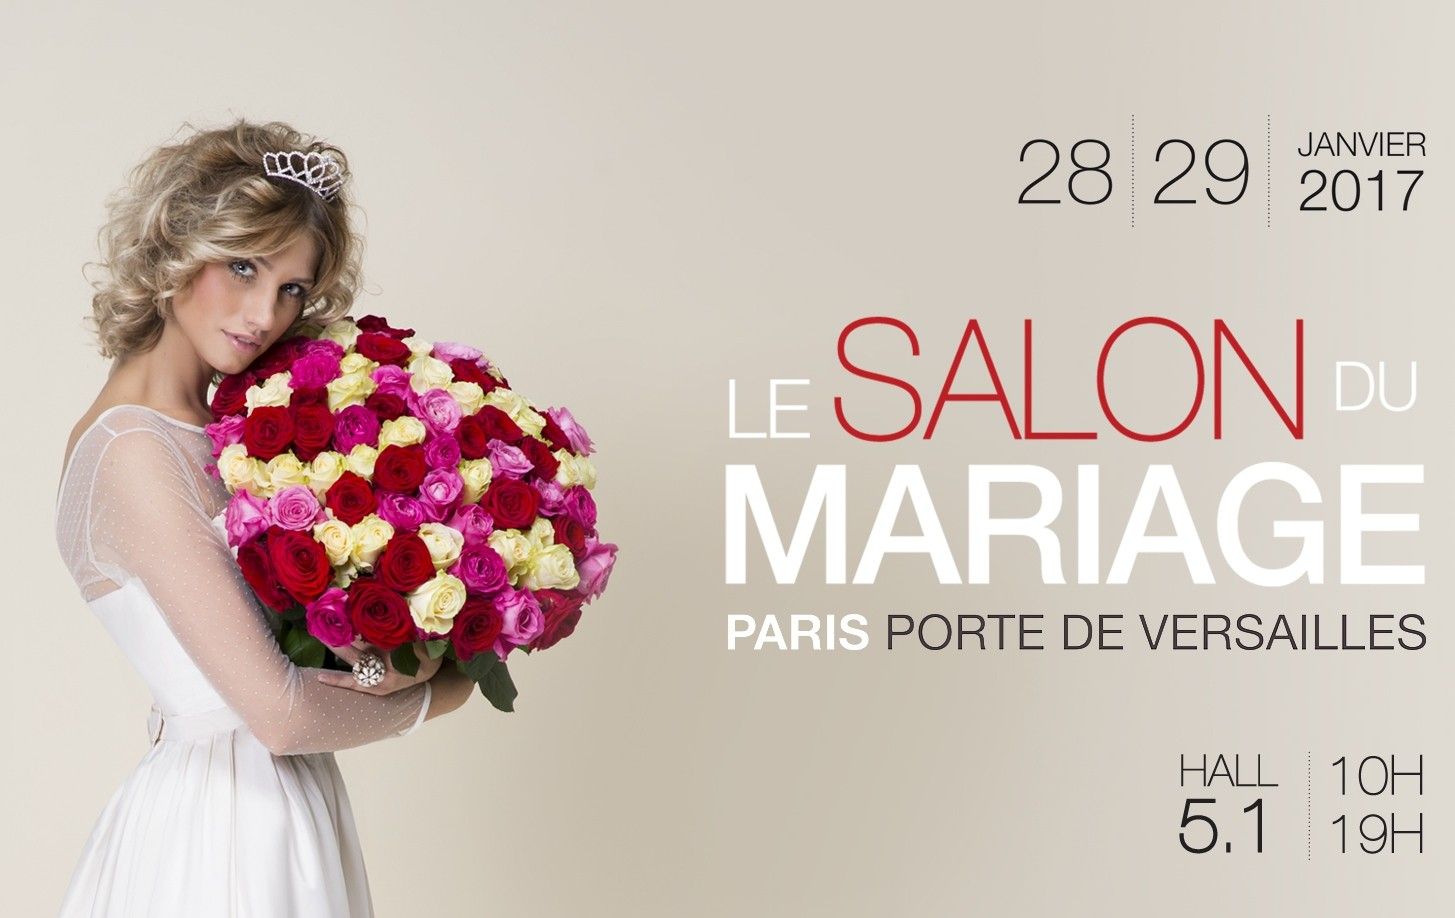 Salon du mariage paris cymbeline robes de mari e for Salon du chien 2017 paris